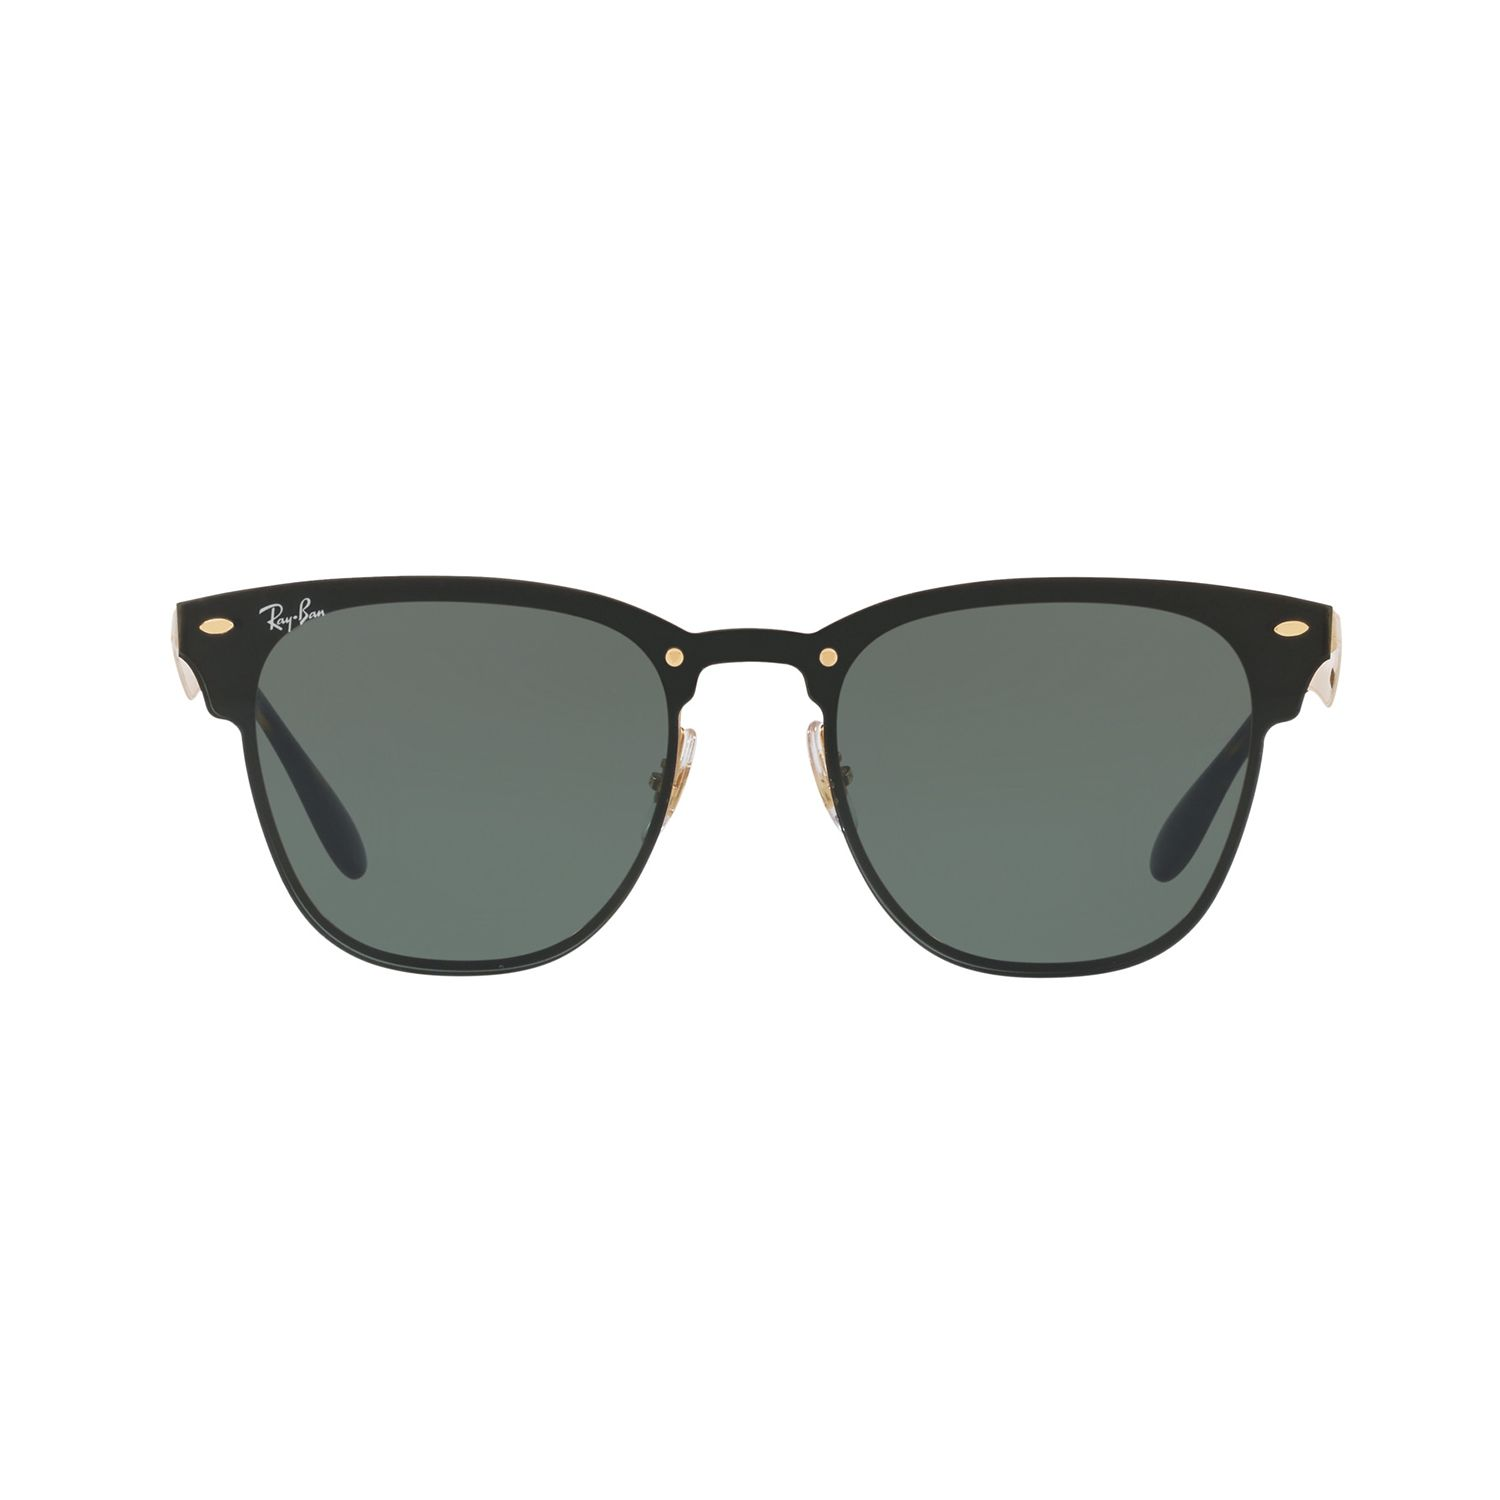 f1a442c0ad2e Women s Ray-Ban Sunglasses